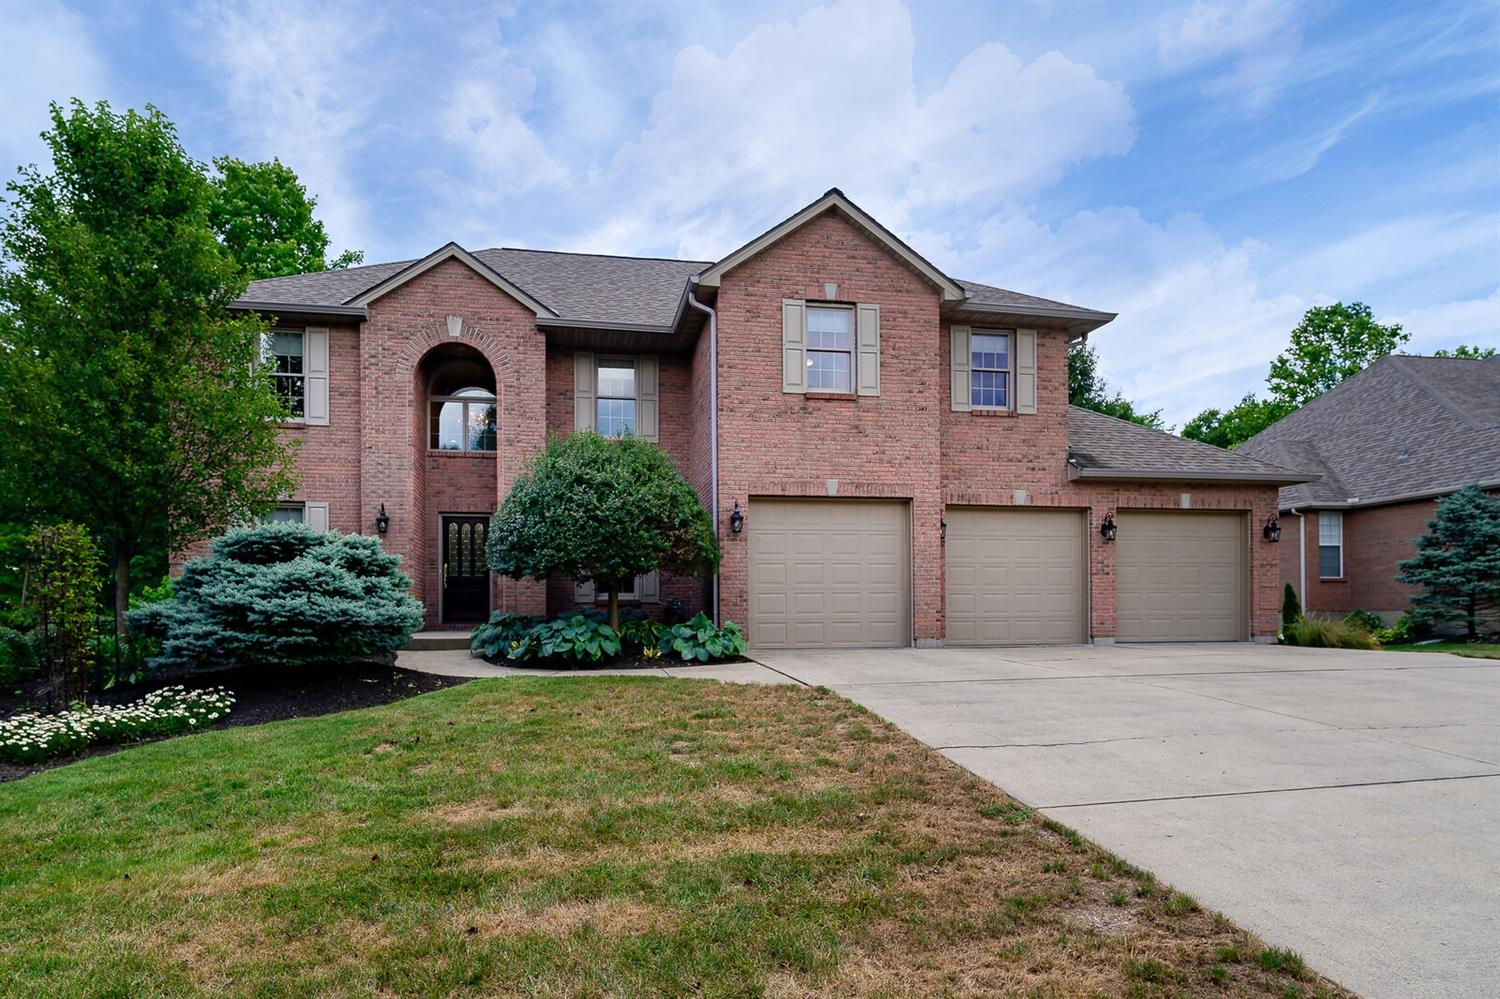 Property for sale at 5673 Yamassee Drive, Liberty Twp,  Ohio 45011